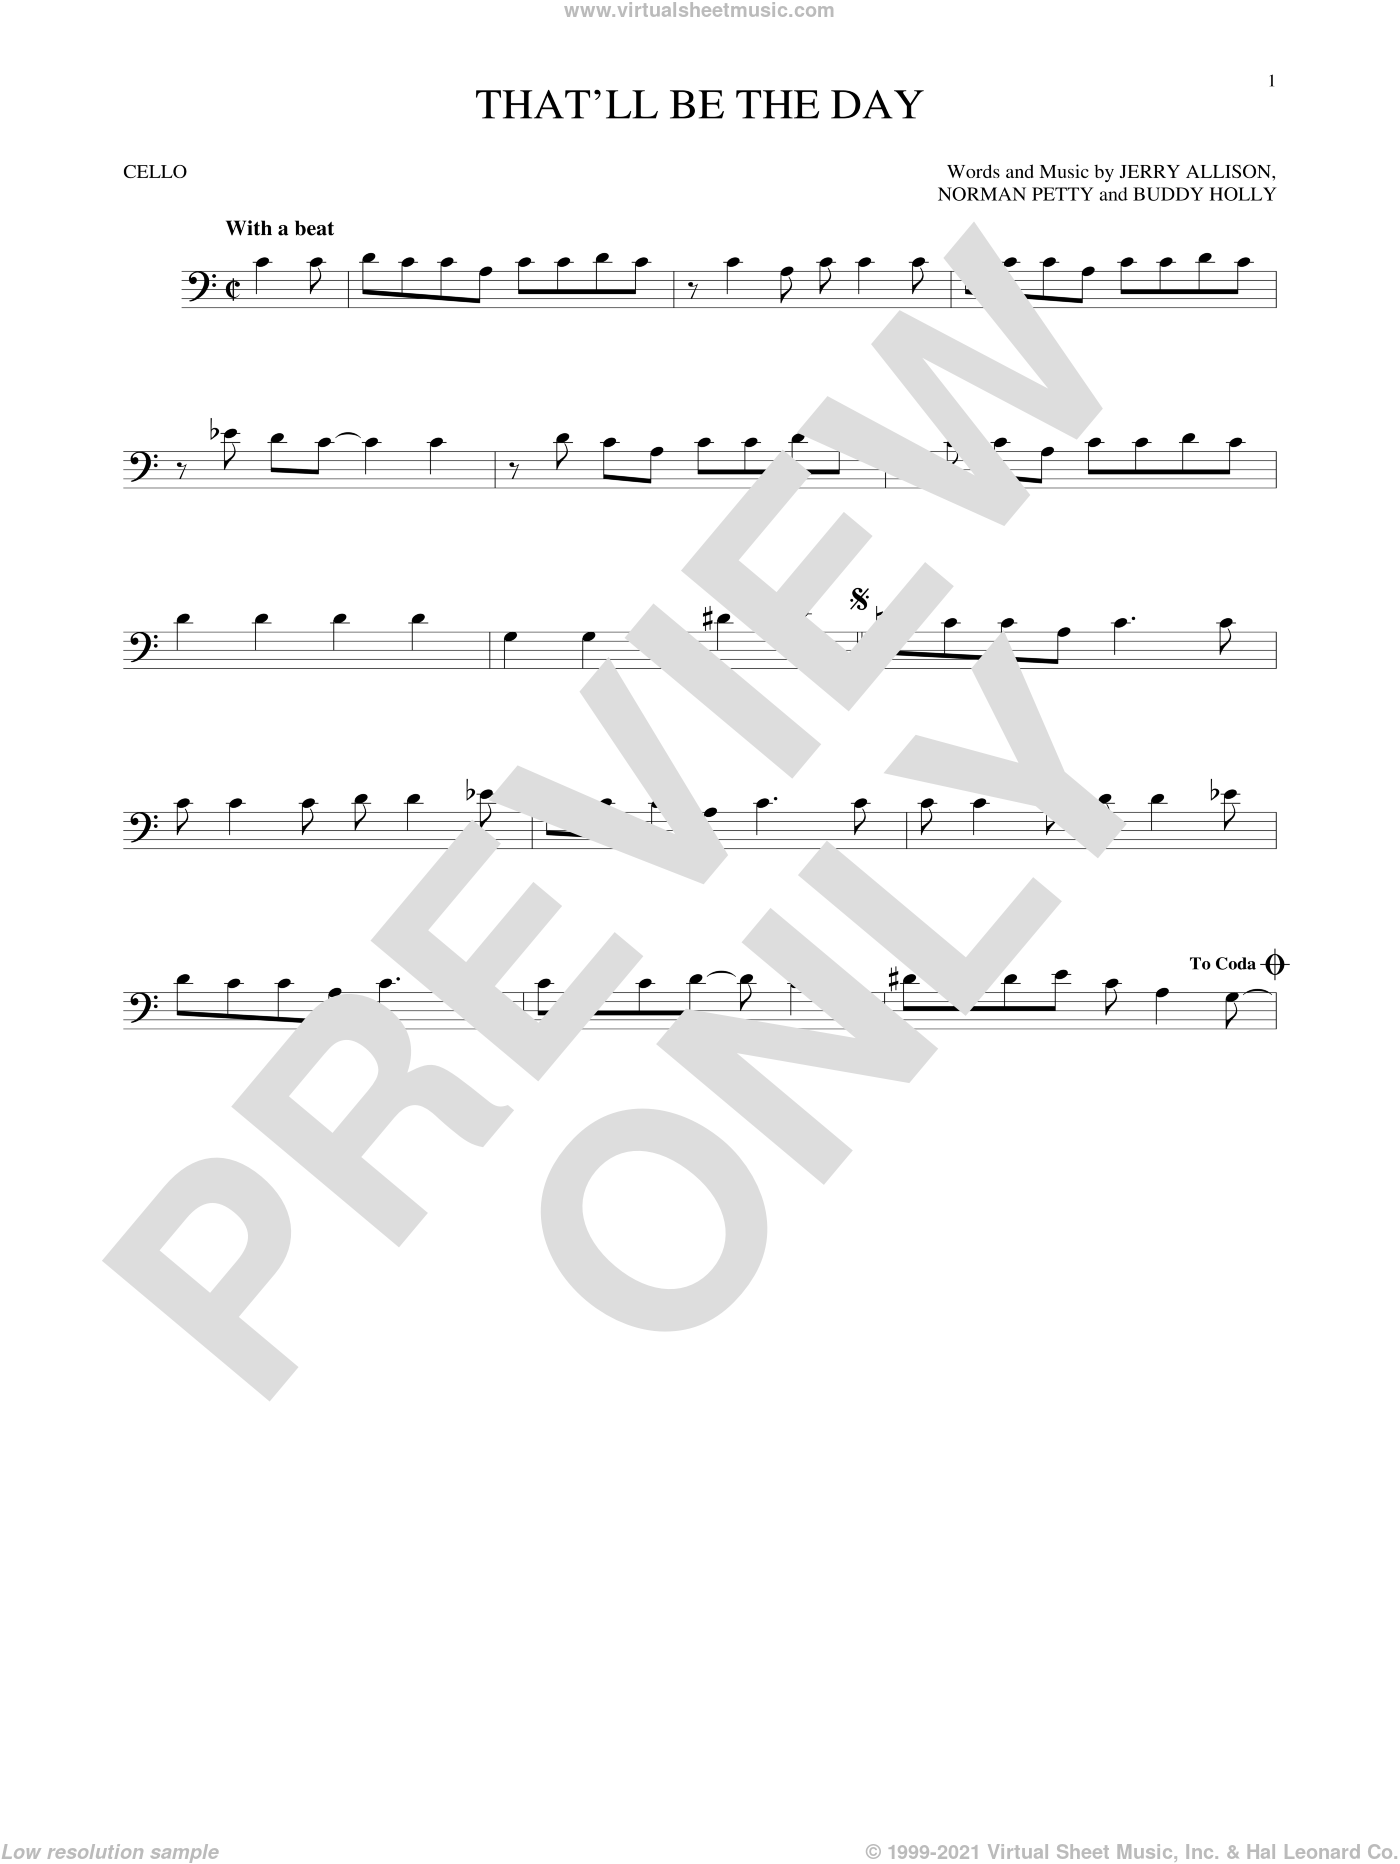 That'll Be The Day sheet music for cello solo by Norman Petty